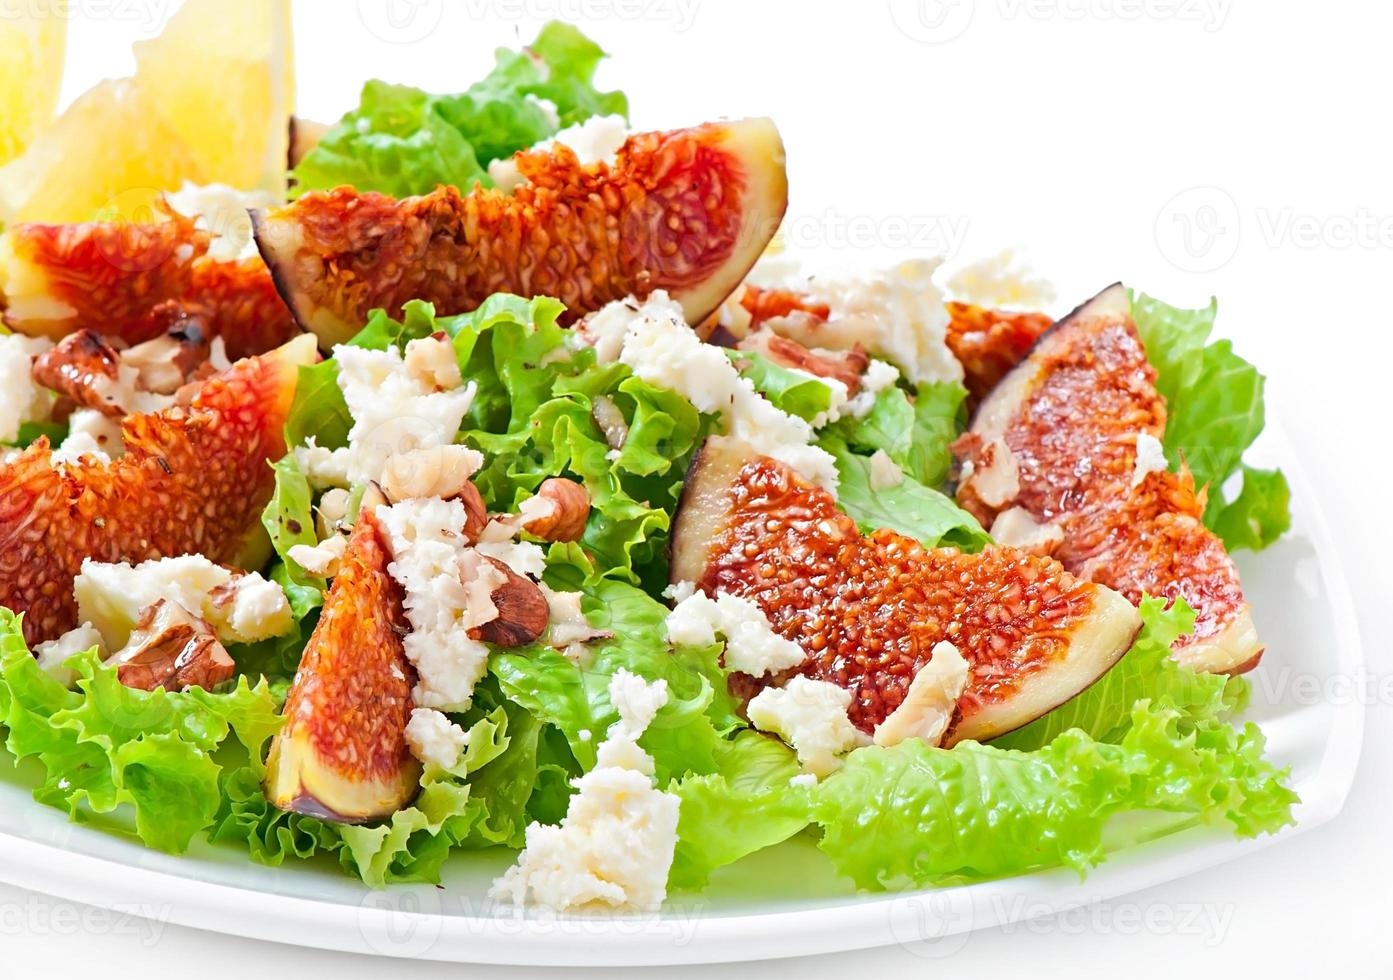 Green salad with figs, cheese and walnuts photo